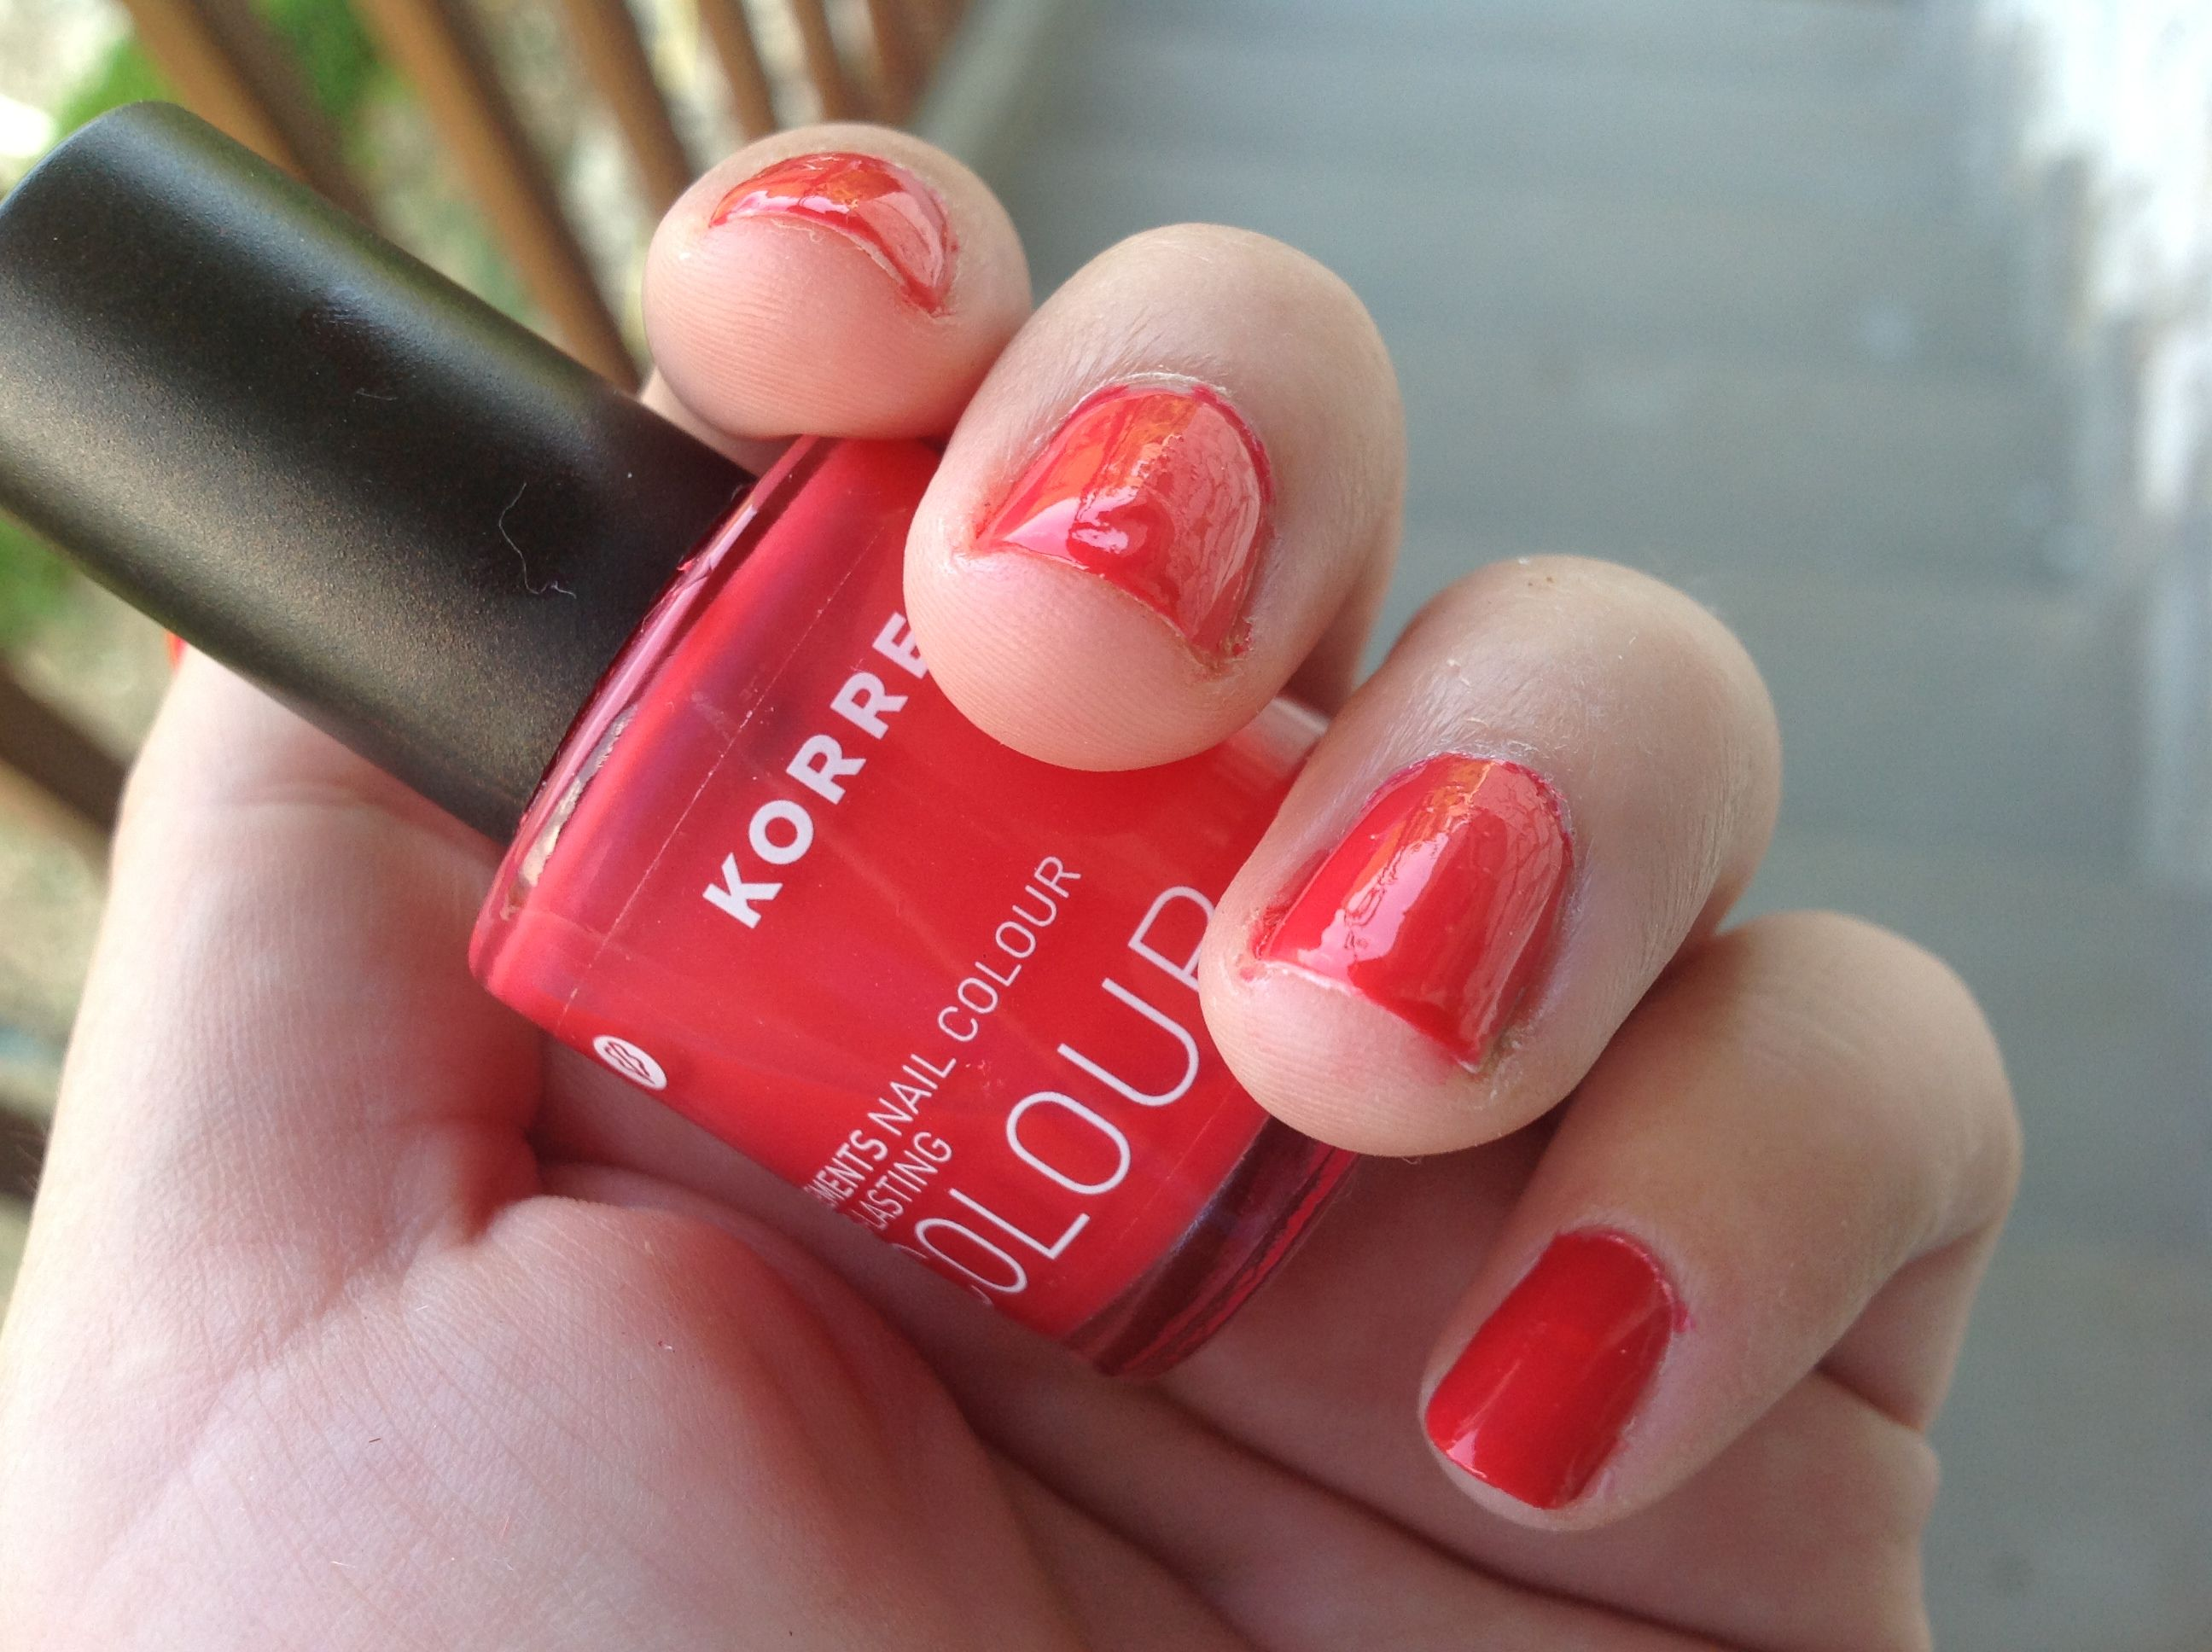 Korres Nail Colour in coral pink!!! <3